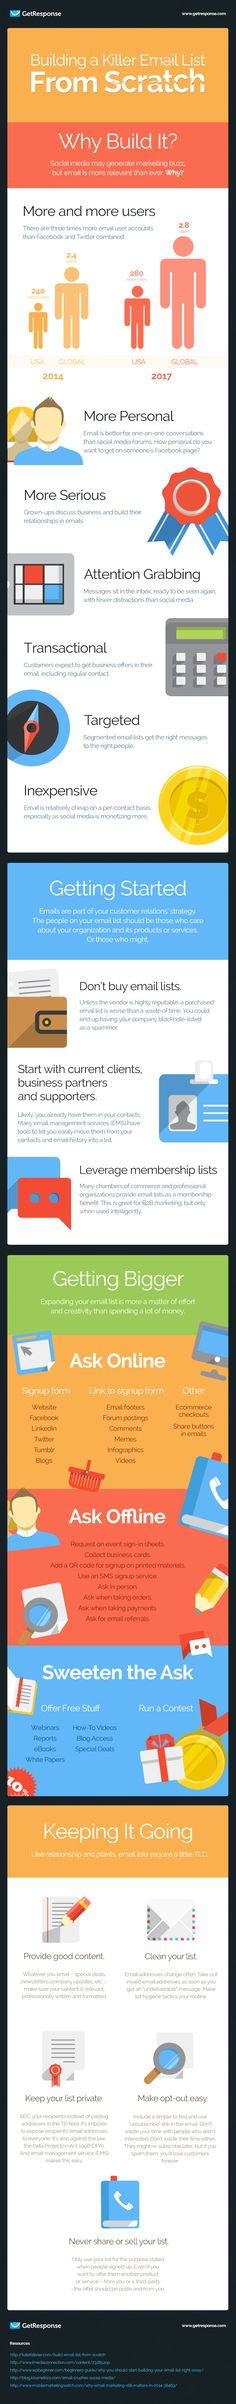 Building a Killer Email List From Scratch #infographic - GetResponse Blog - Email Marketing Tips